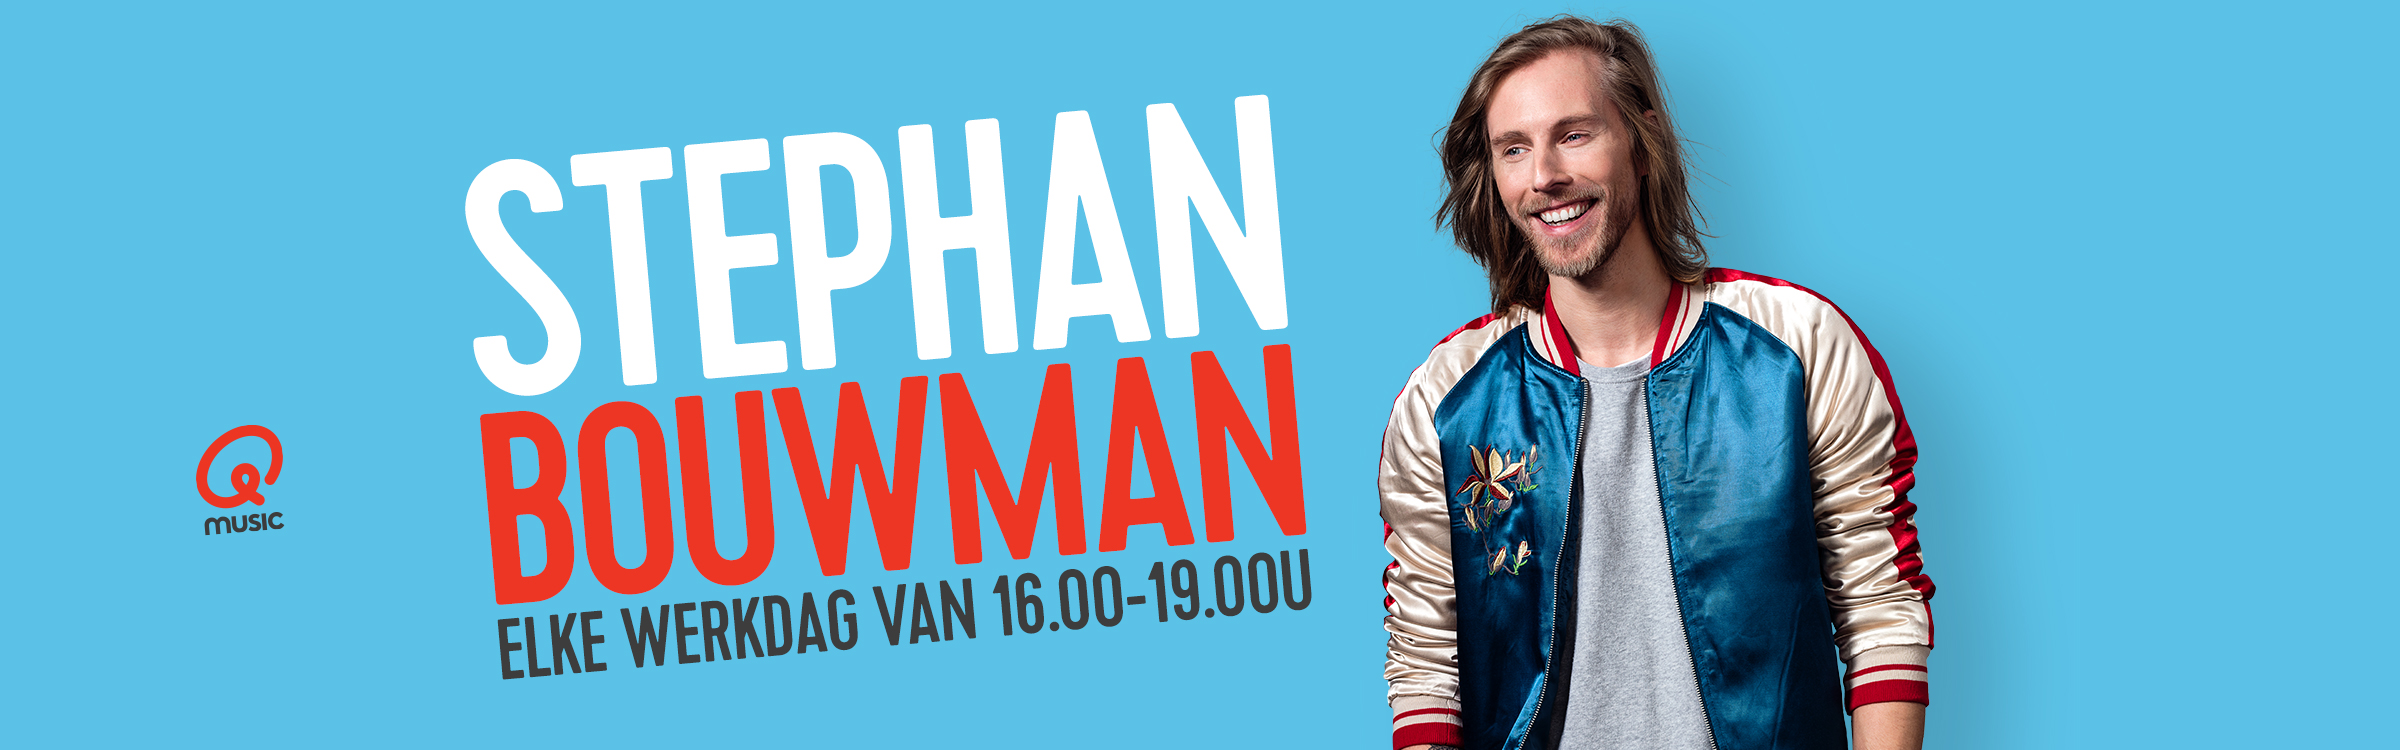 Qmusic actionheader stephan 1